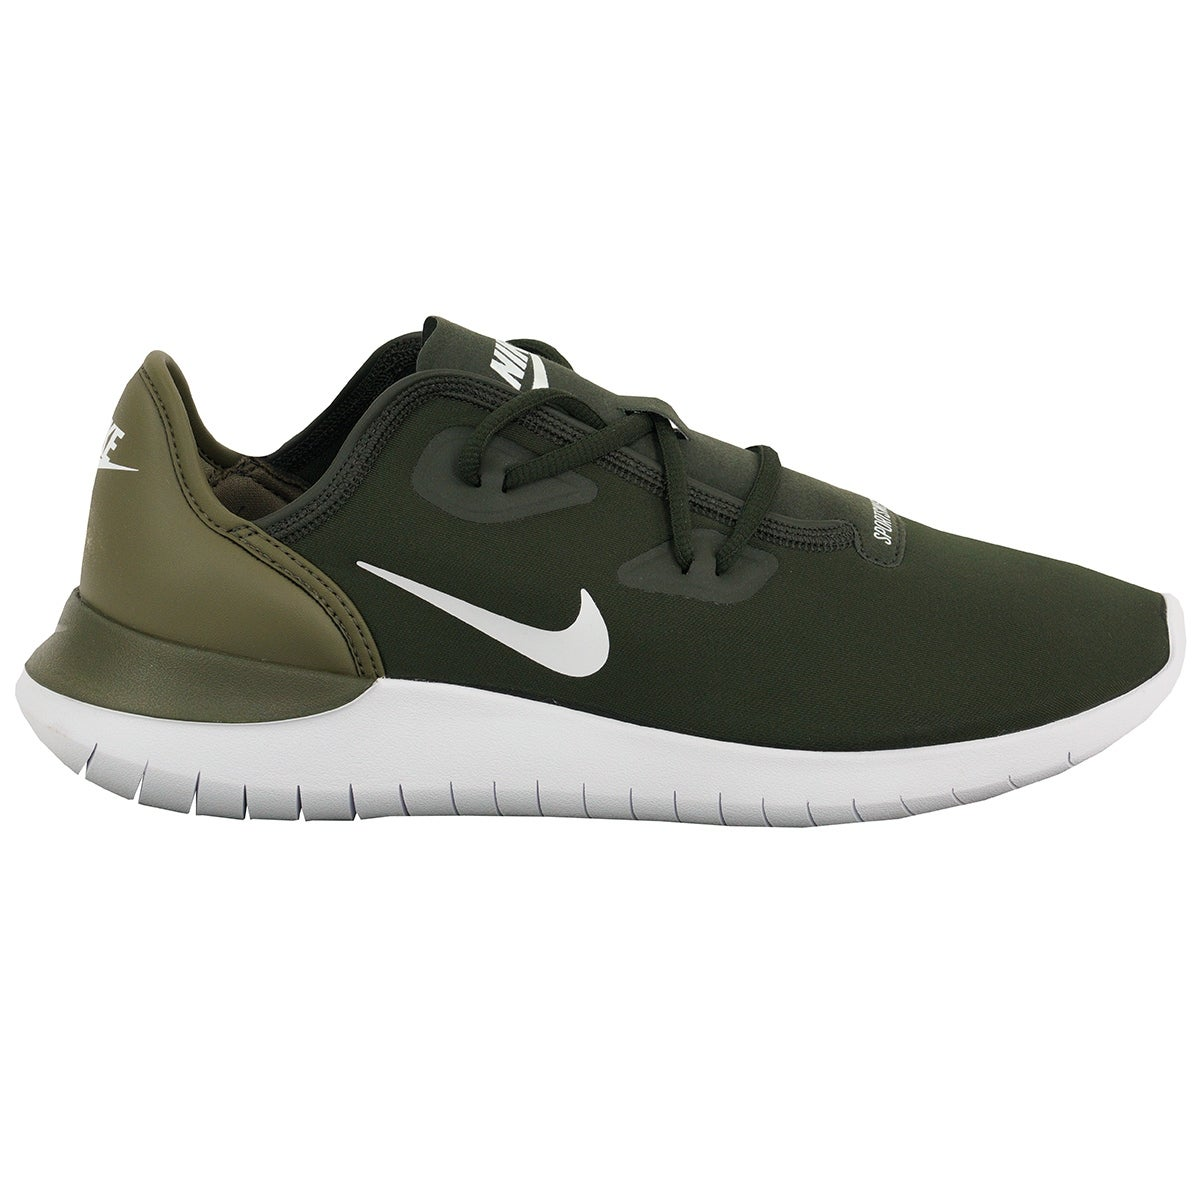 Nike Roshe Run Slip : Nike Outlet 70% Off Store Nike Shoes